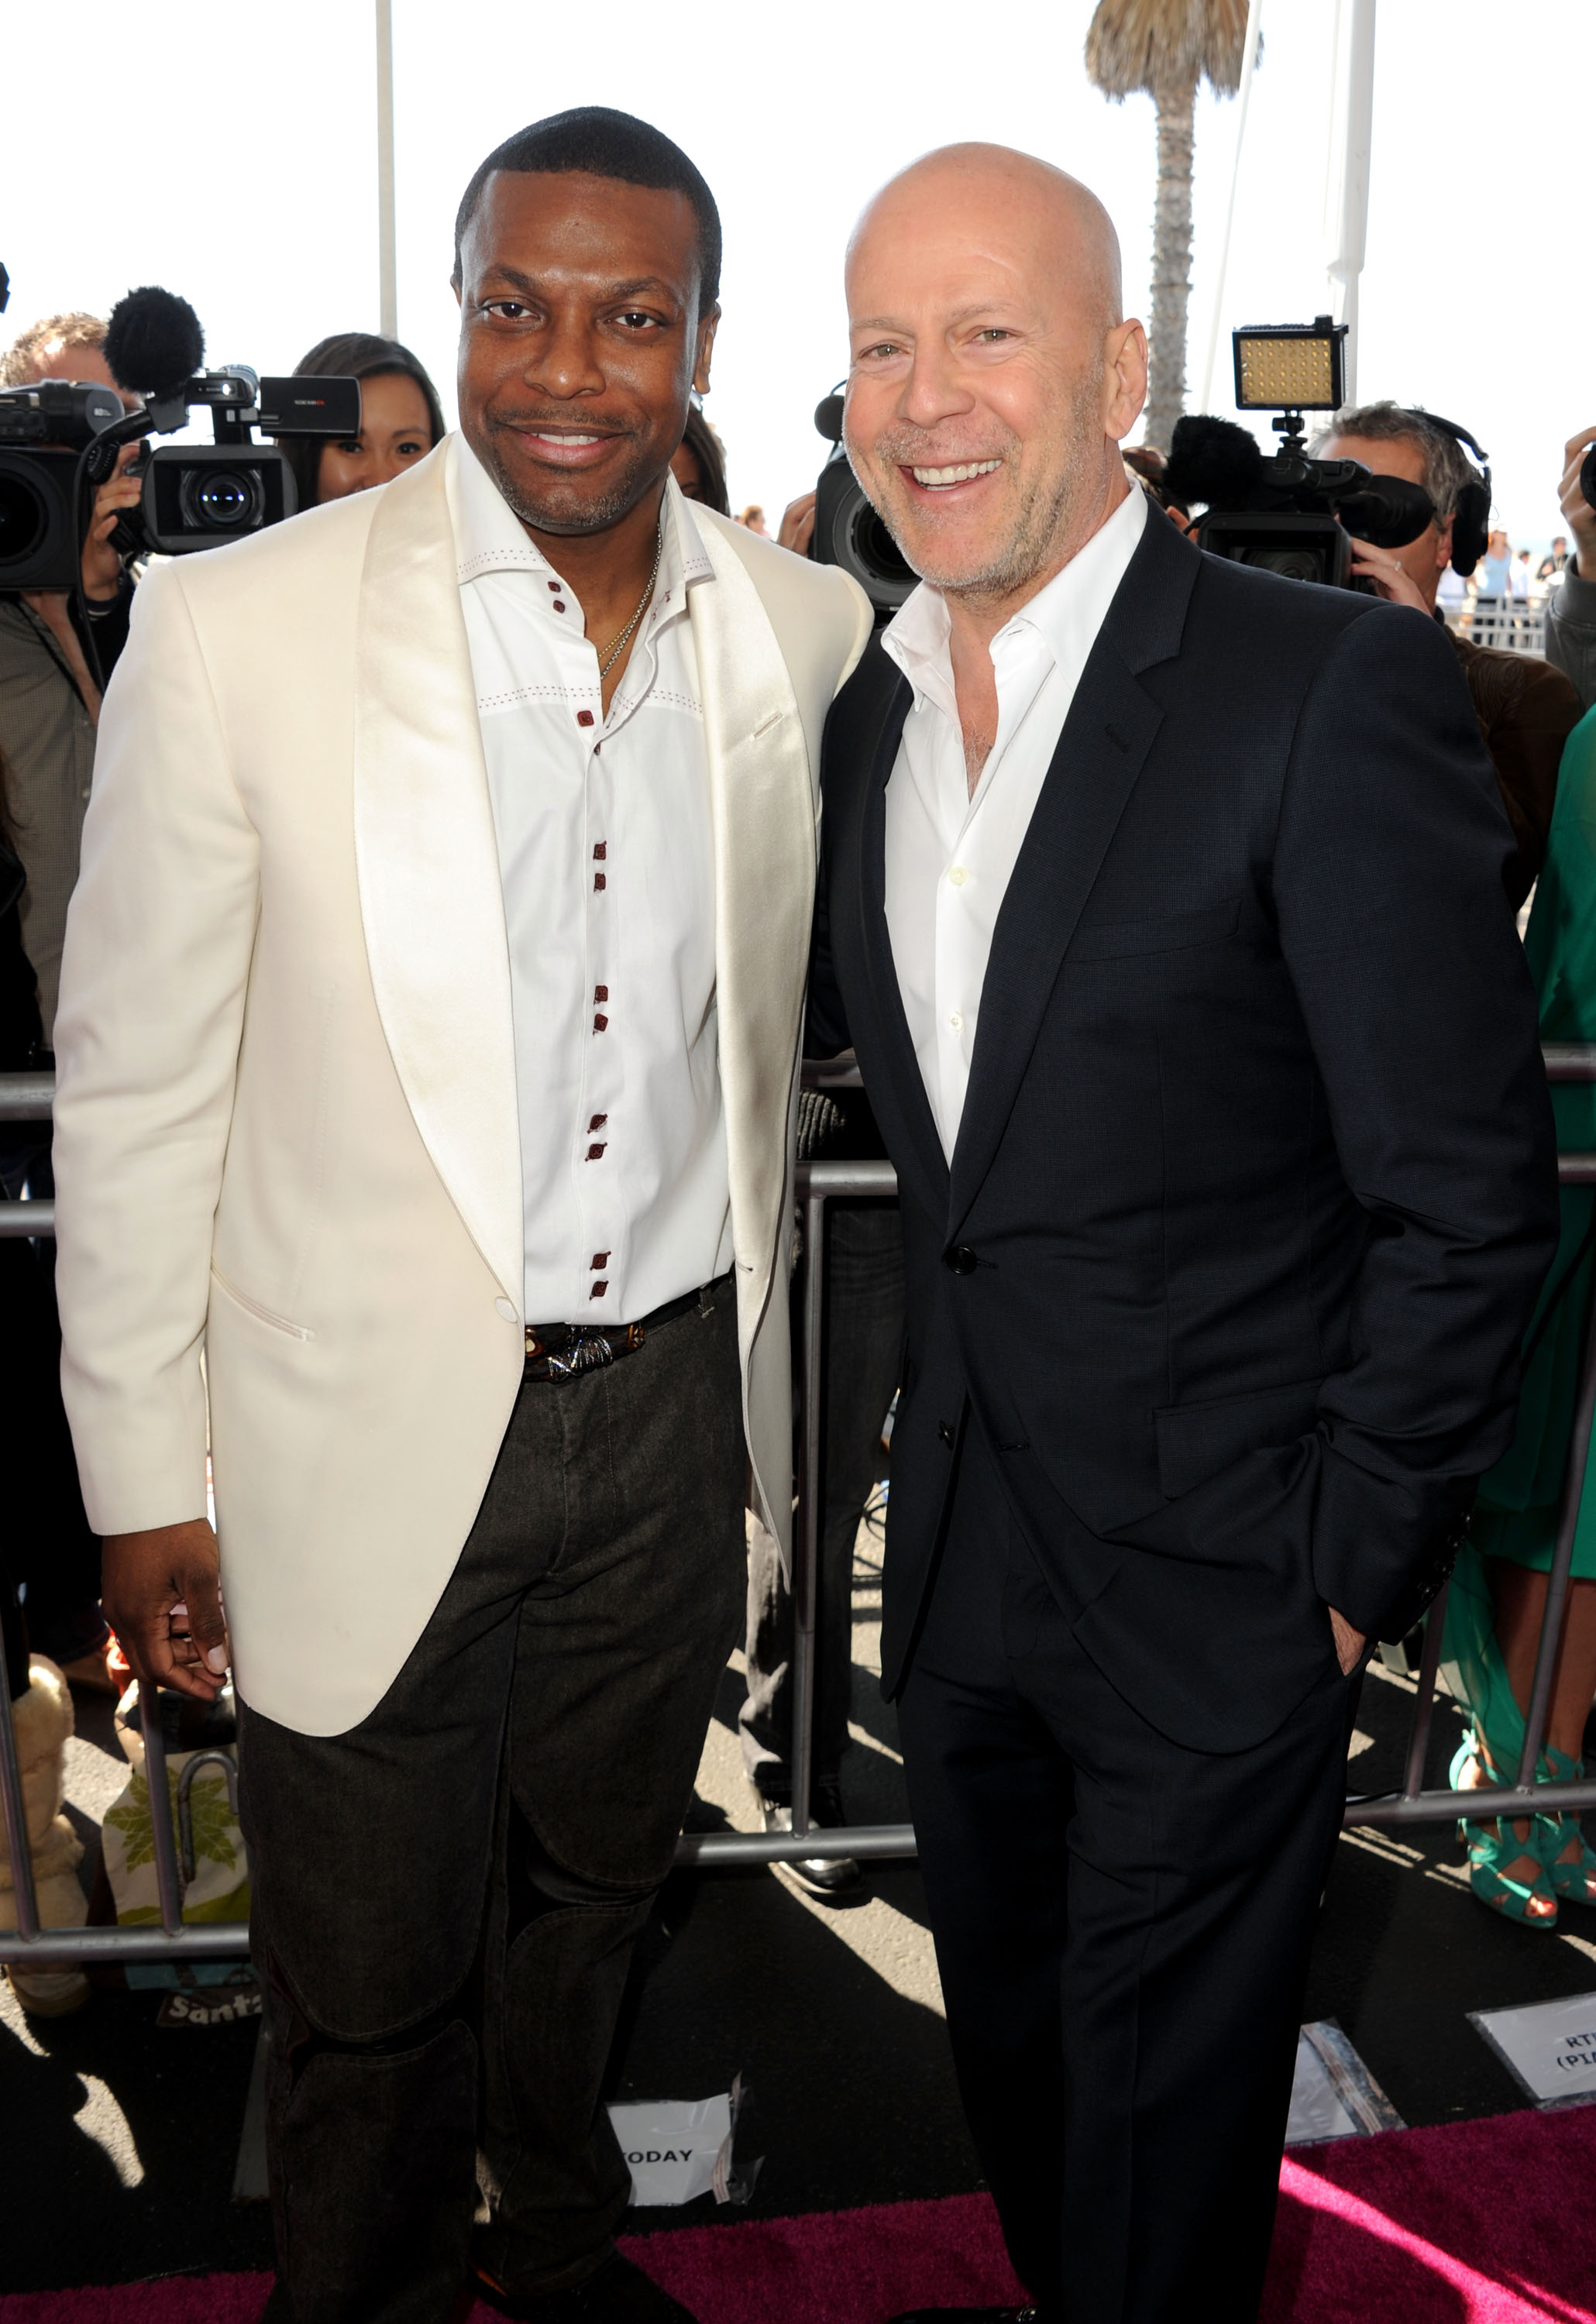 Chris Tucker and Bruce Willis on the red carpet at the Spirit Awards 2013.